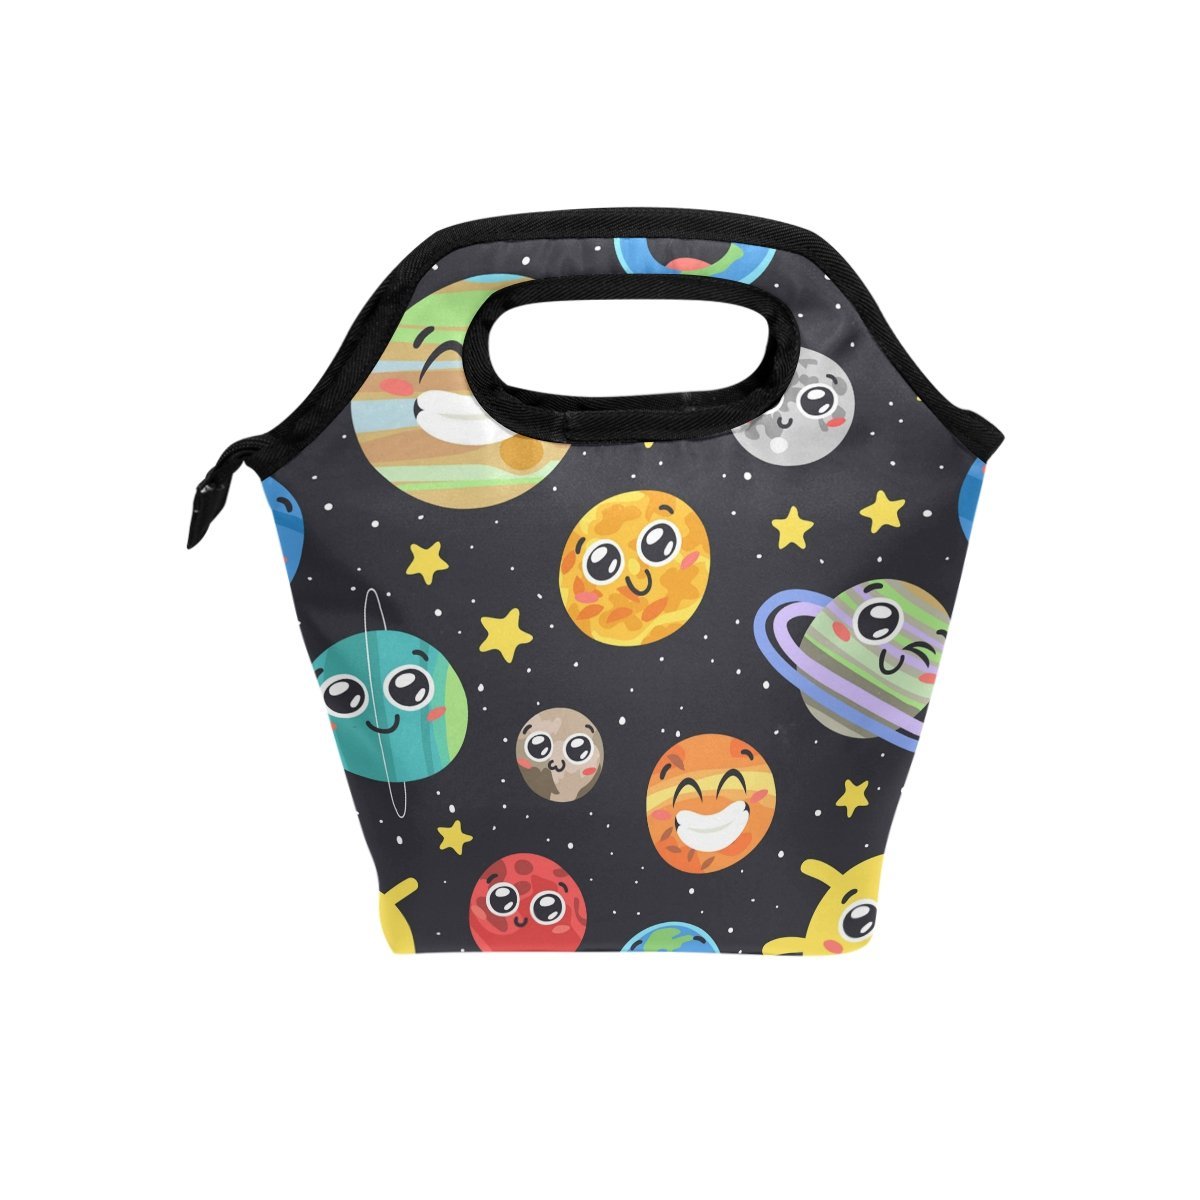 ShineSnow Hand Drawn Solar System Sun Moon Insulated Lunch Bag, Cartoon Funny Cute Tote Handbag Lunchbox Food Container Cooler Warm Pouch for Adult Kids Outdoors School Office